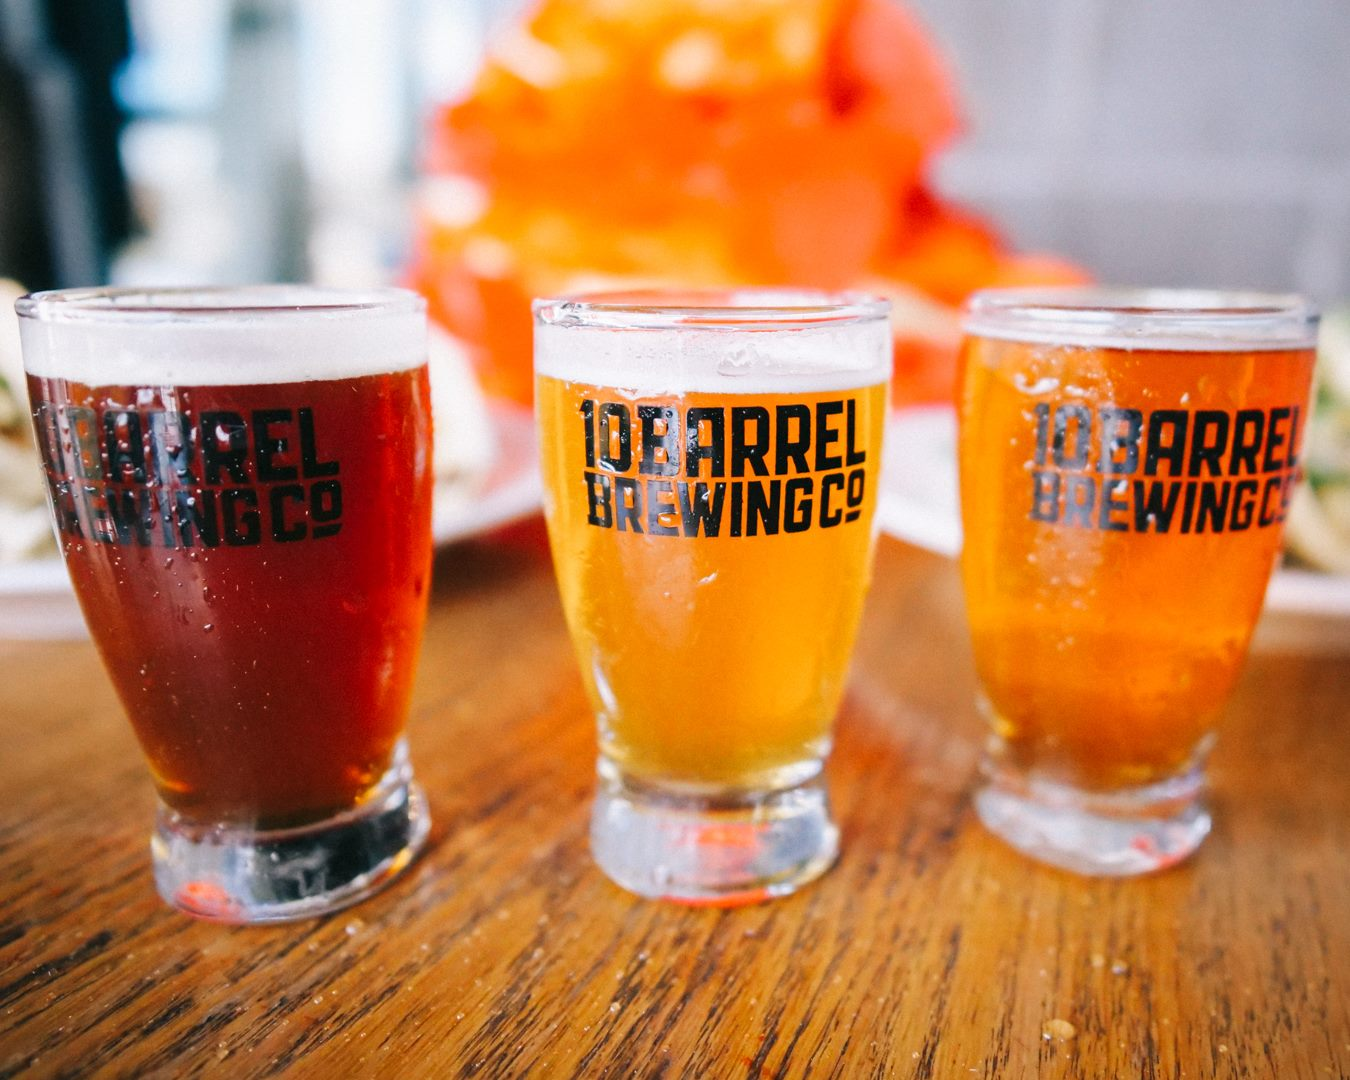 image of Mexican-style lagers courtesy of 10 Barrel Brewing